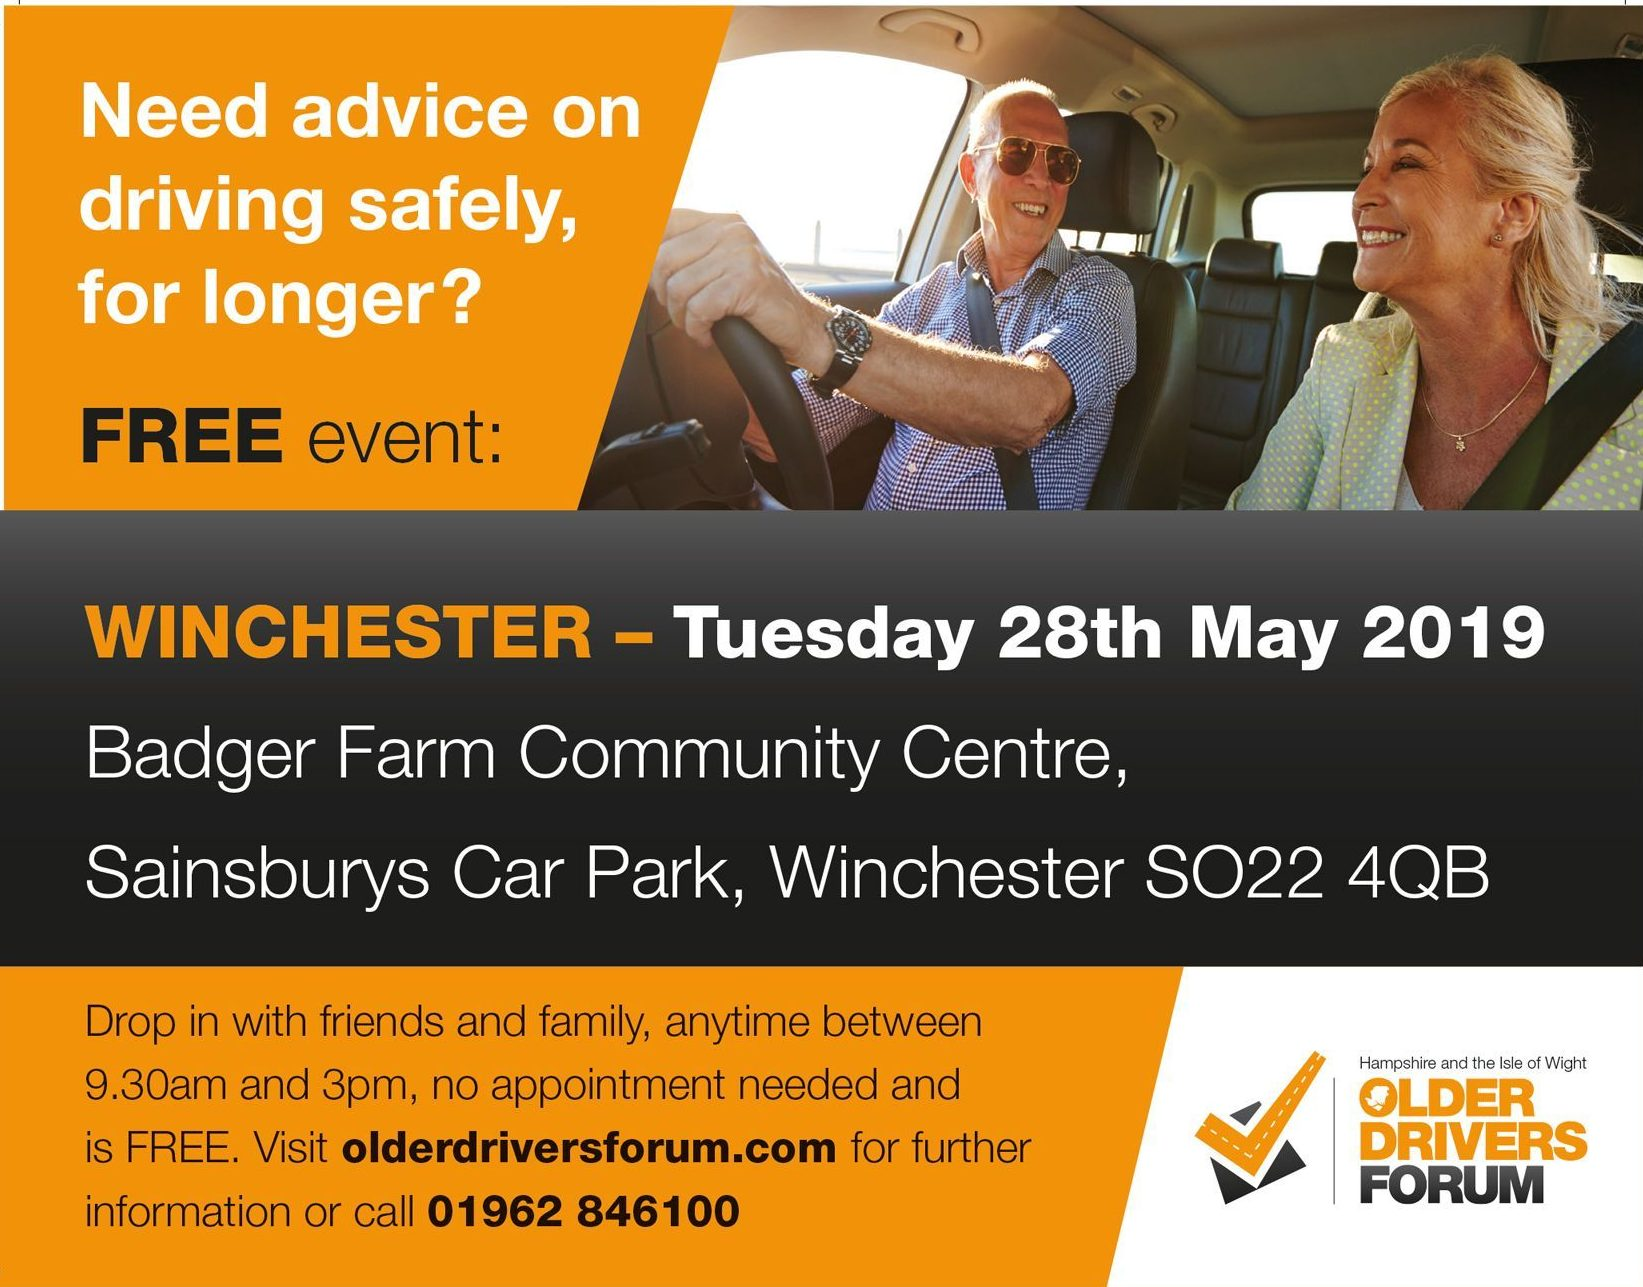 Older drivers forum at Badger Farm Community Centre on 28 May 2019